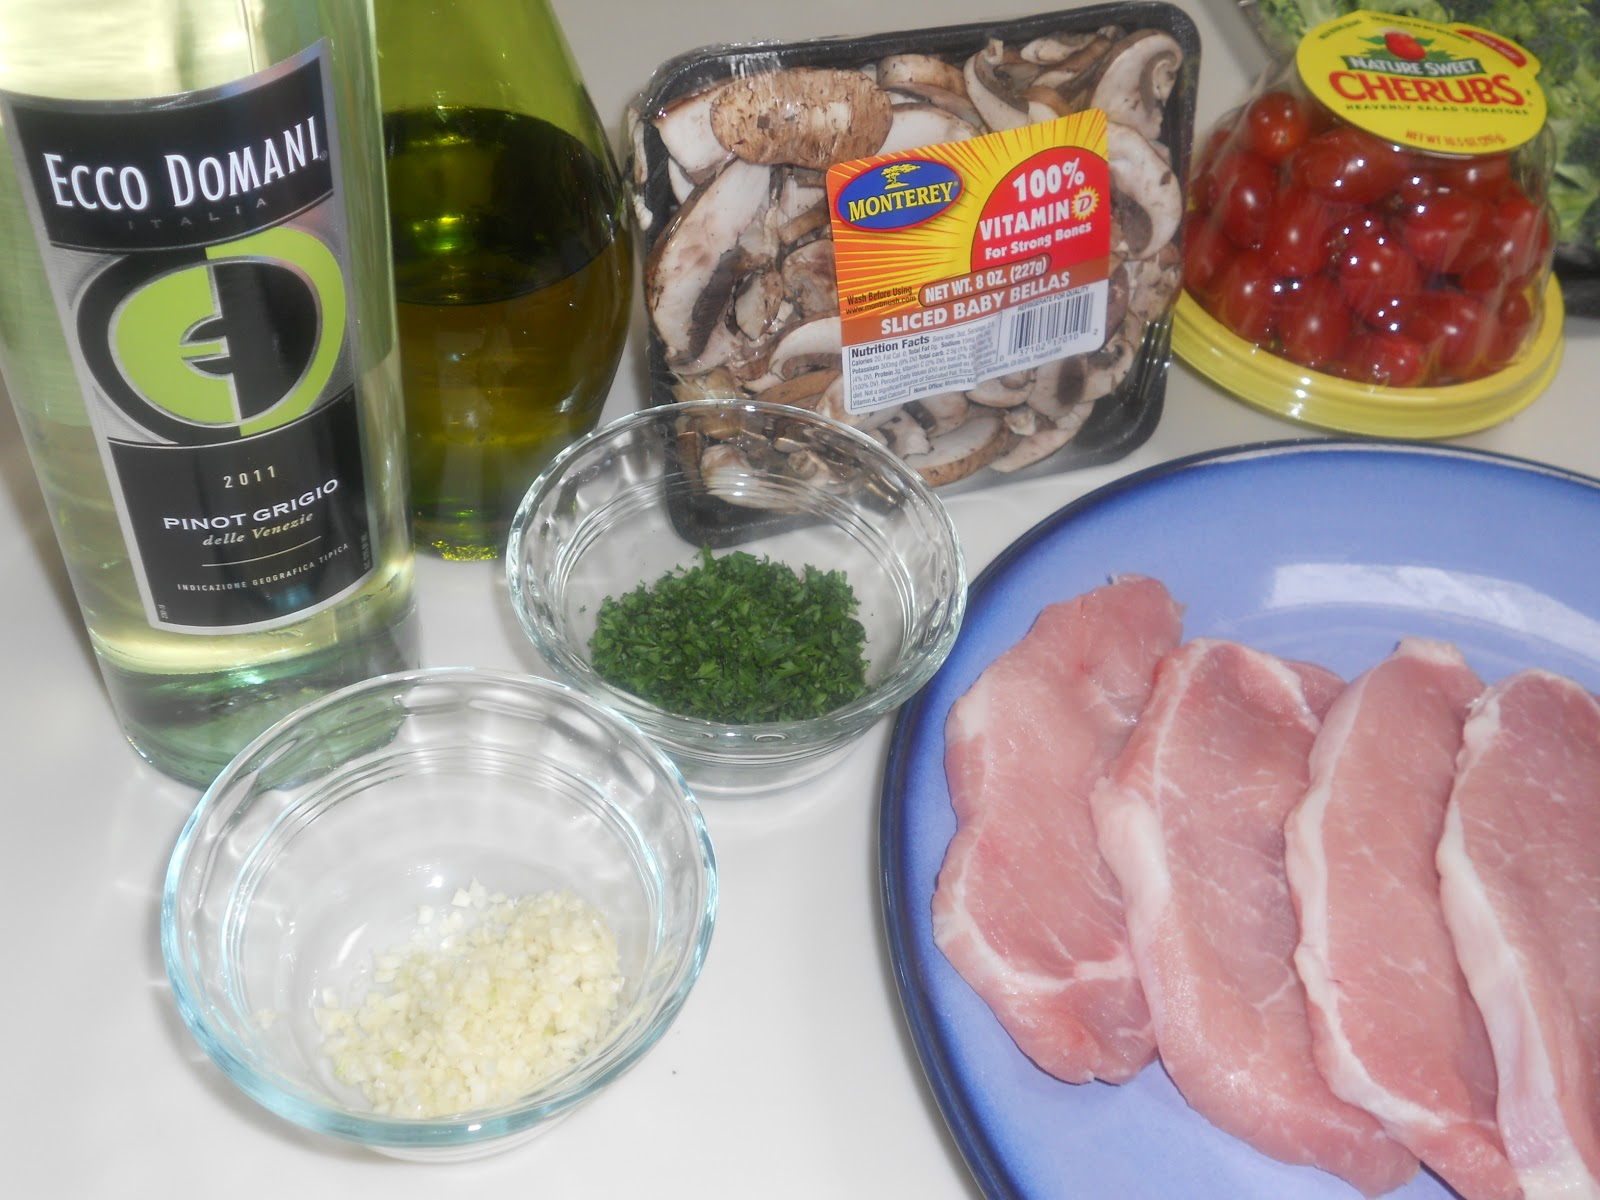 ... -Thyme Life: Pork Chops with a White Wine, Mushroom and Tomato Sauce